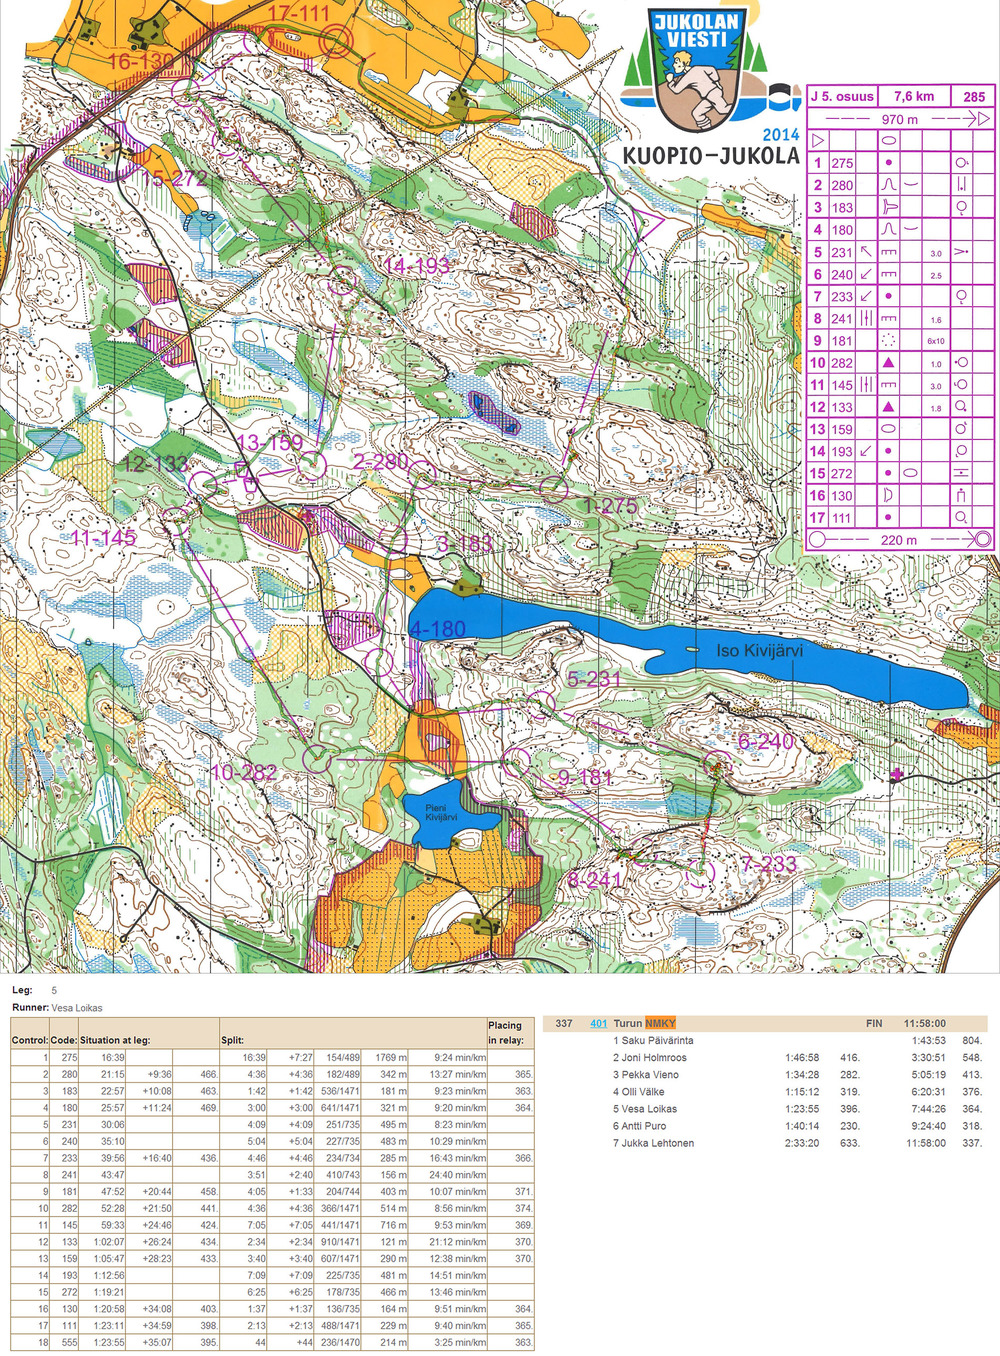 My map and route last year when I was orienteering the 5th leg of in Kuopio, Finland.